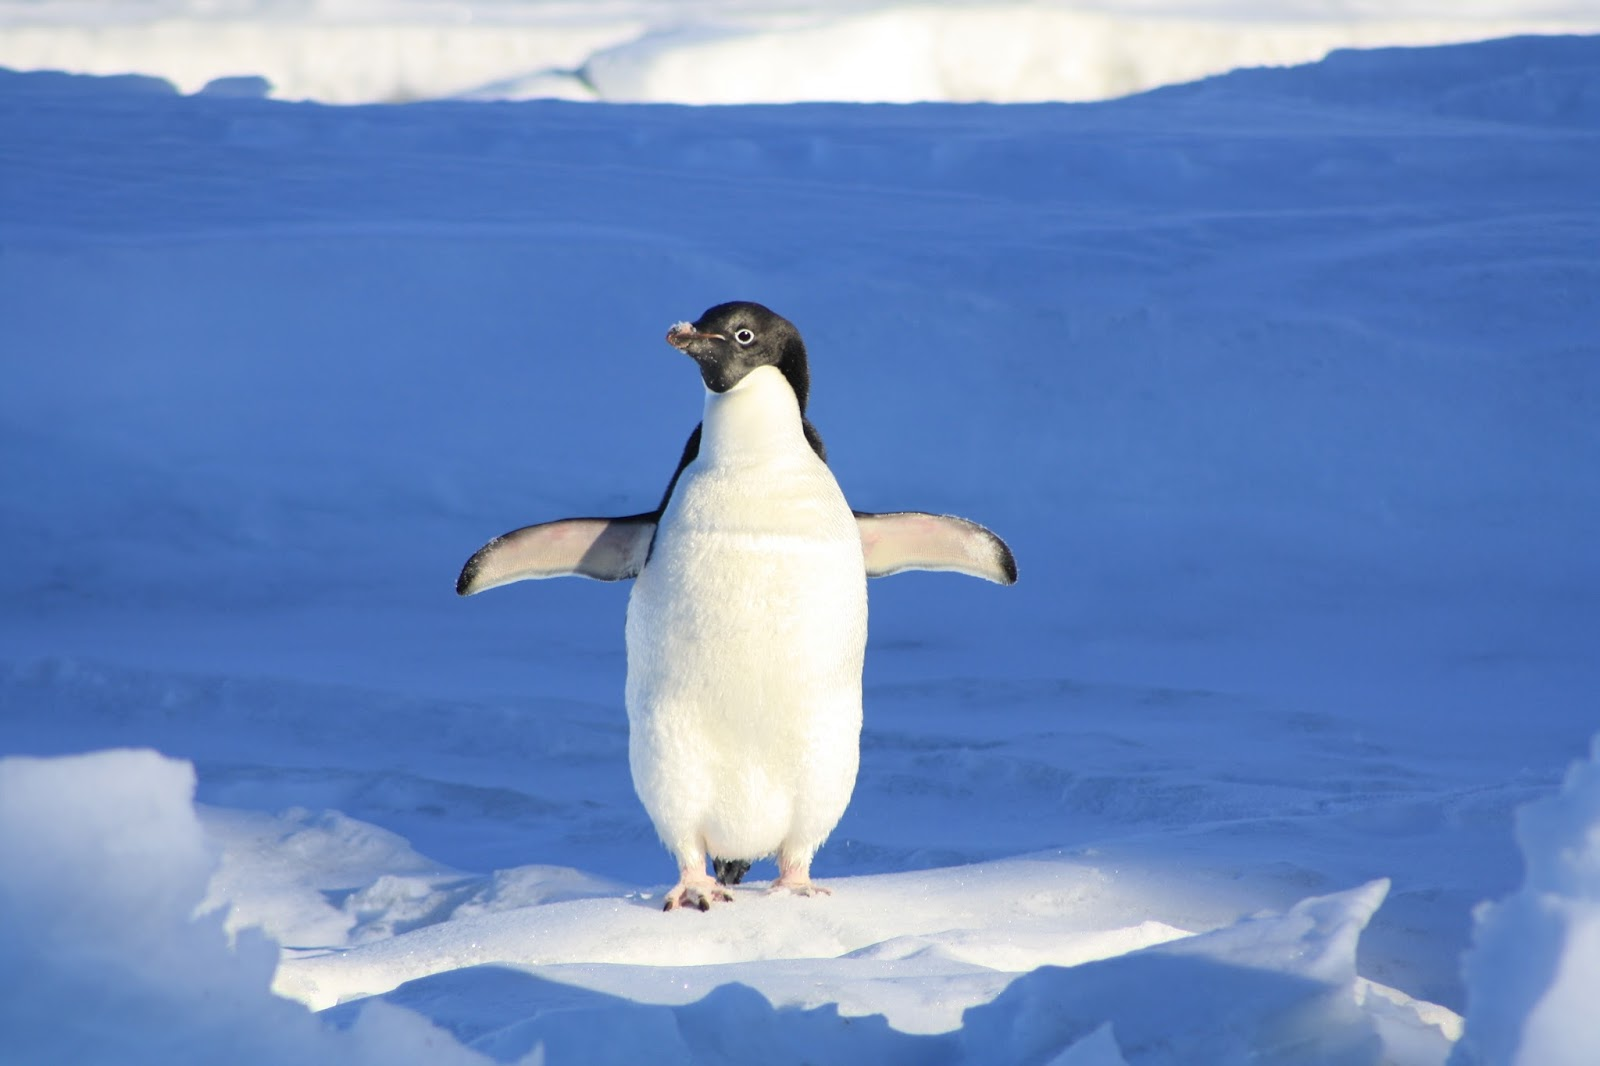 Penguin feet on ice.